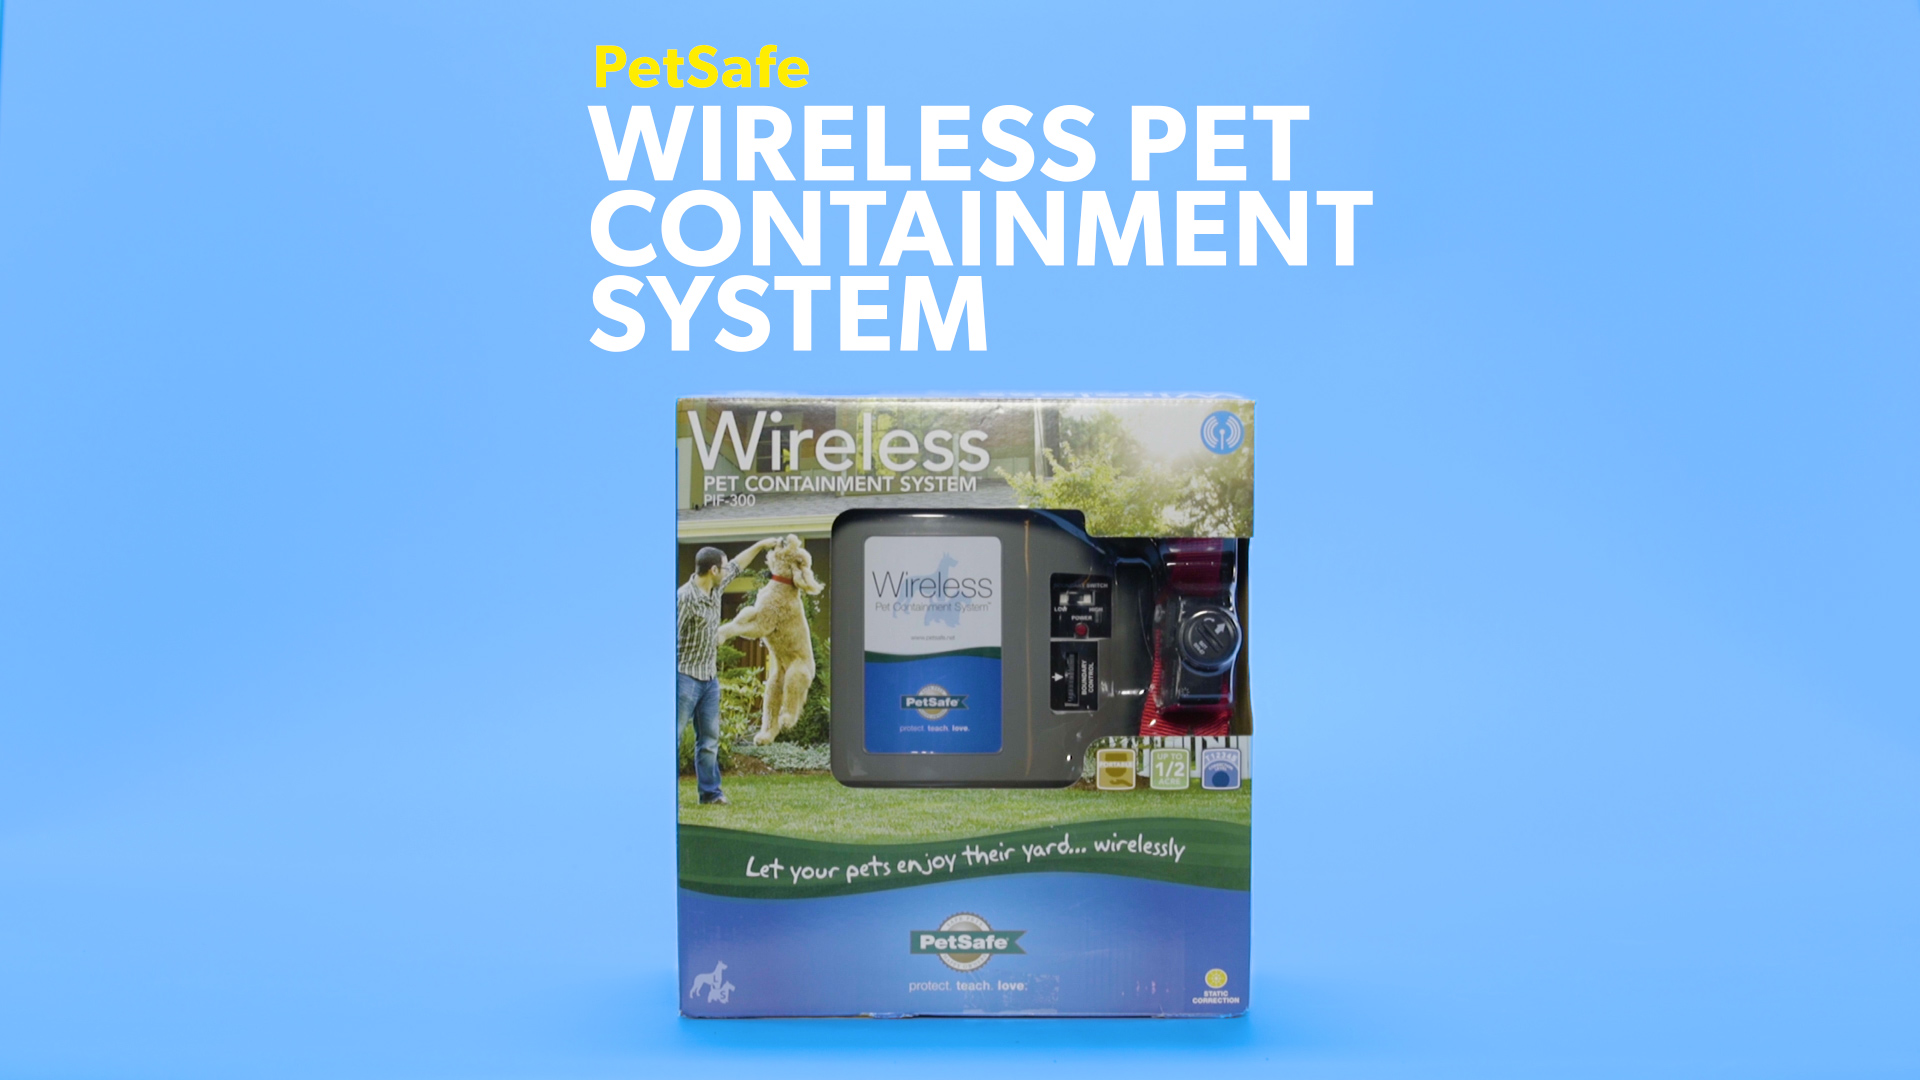 Petsafe Wireless Containment System Wiring Diagram